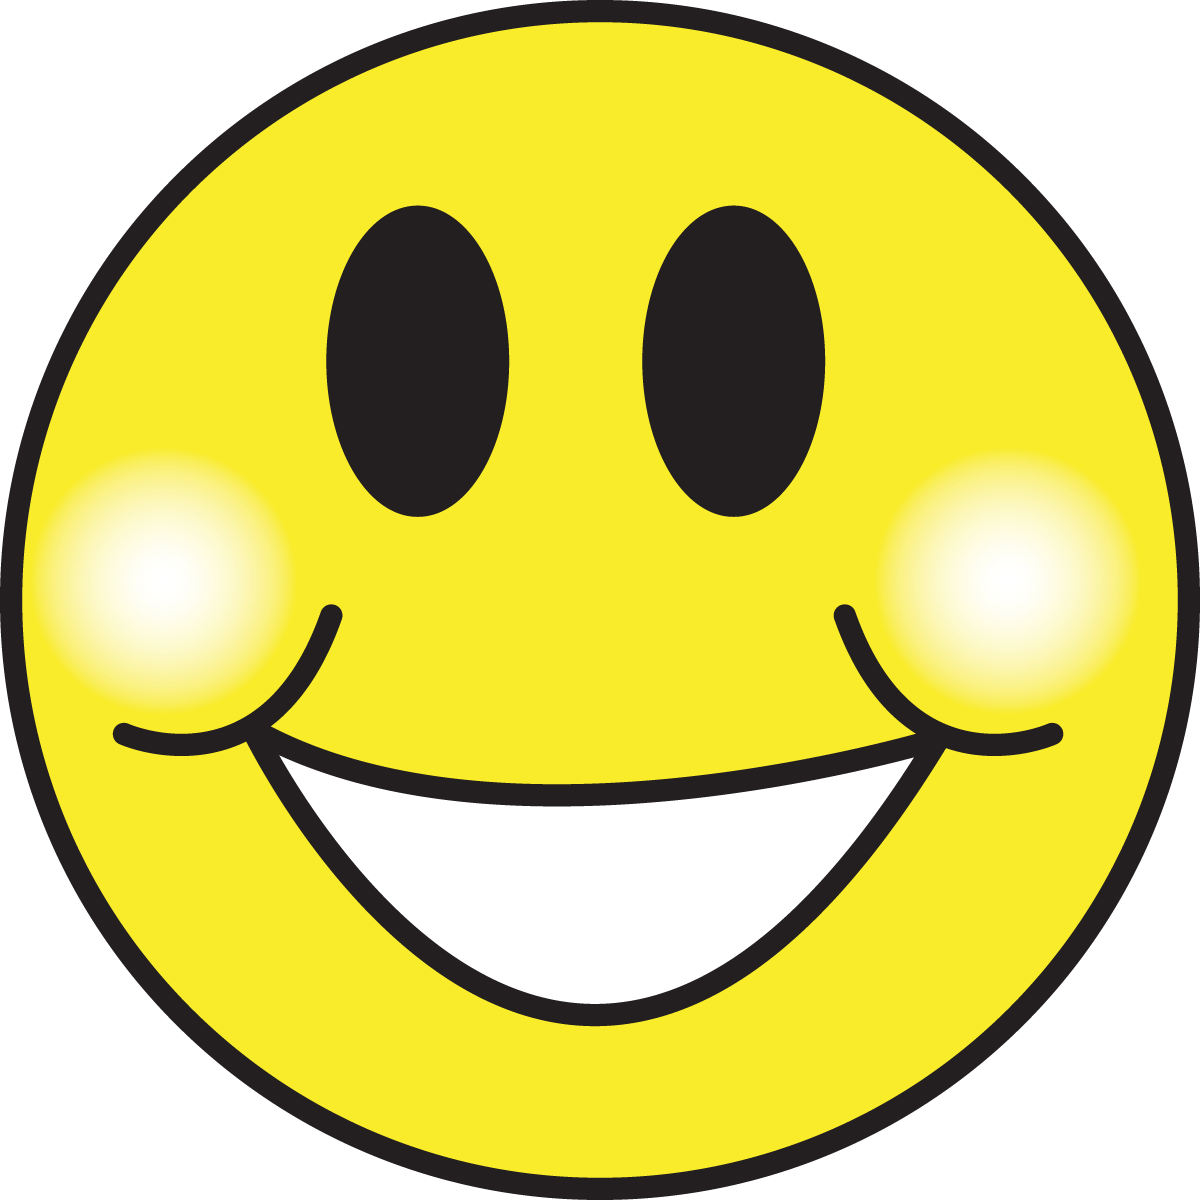 Happy face smiley face clip art emotions free clipart images